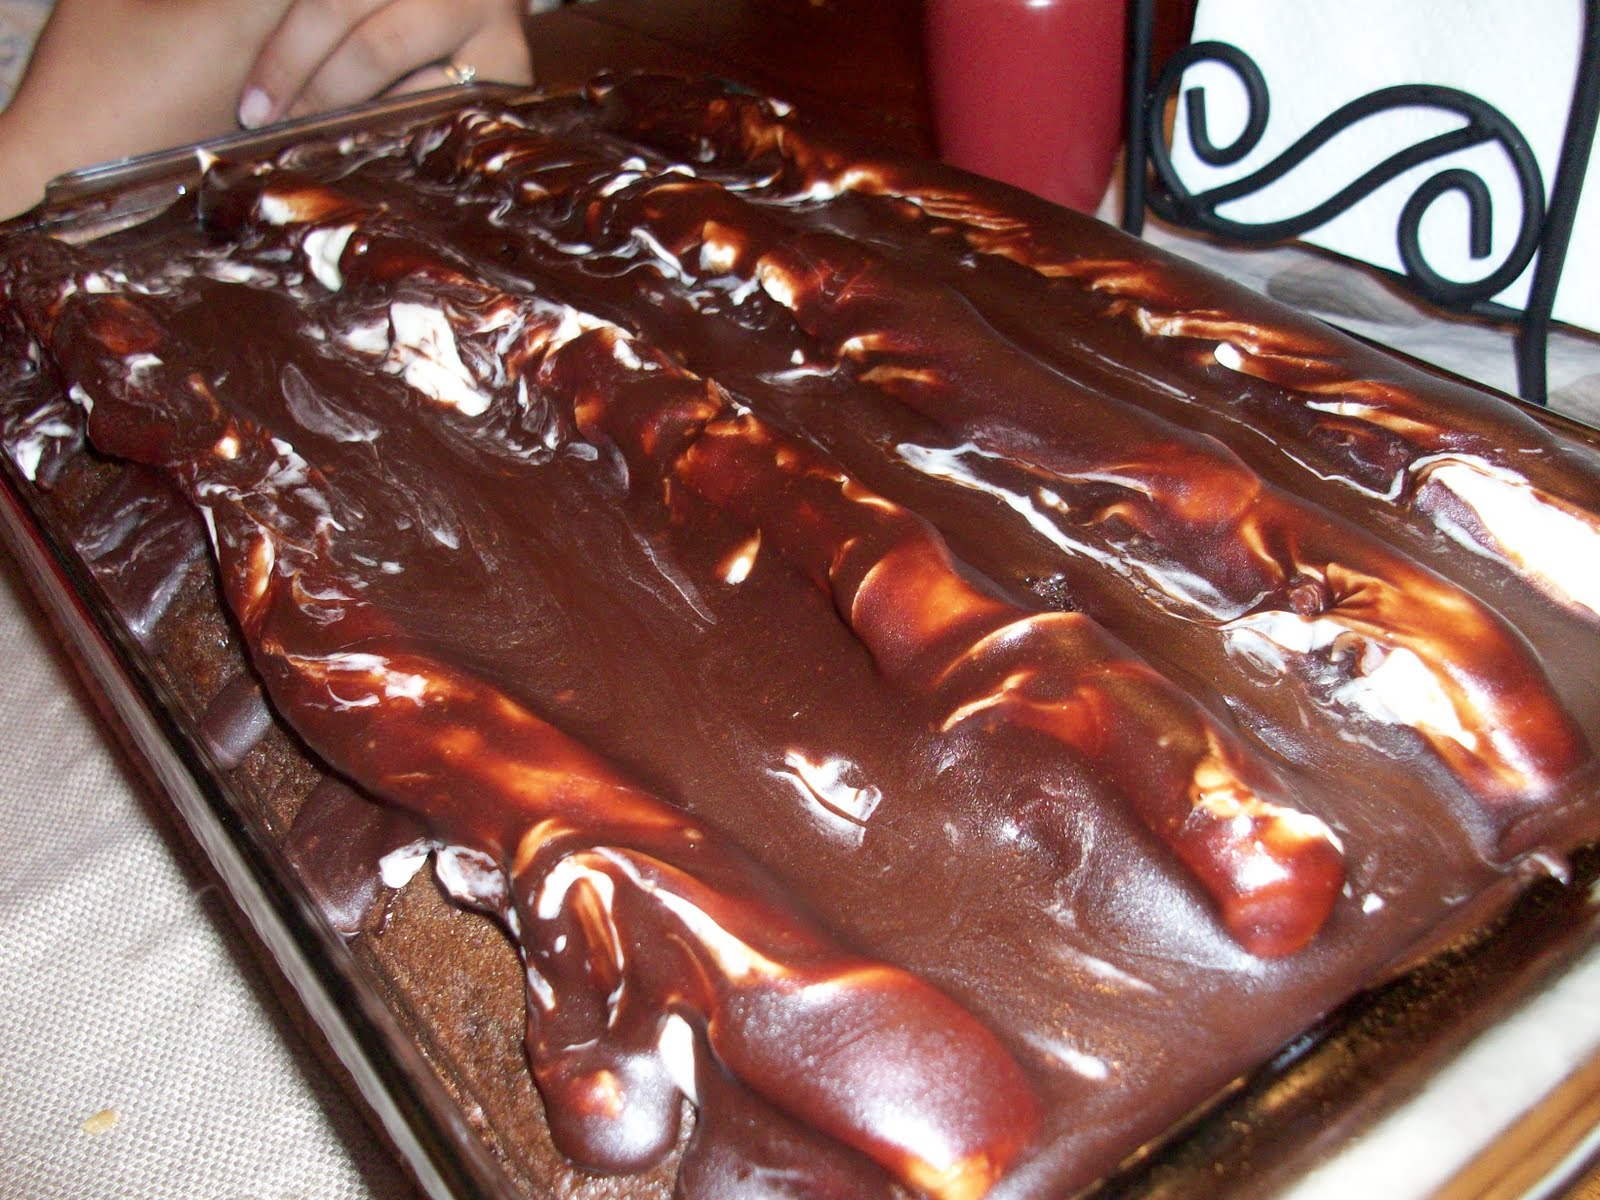 Chocolate lumpy bumpy cake recipe uk